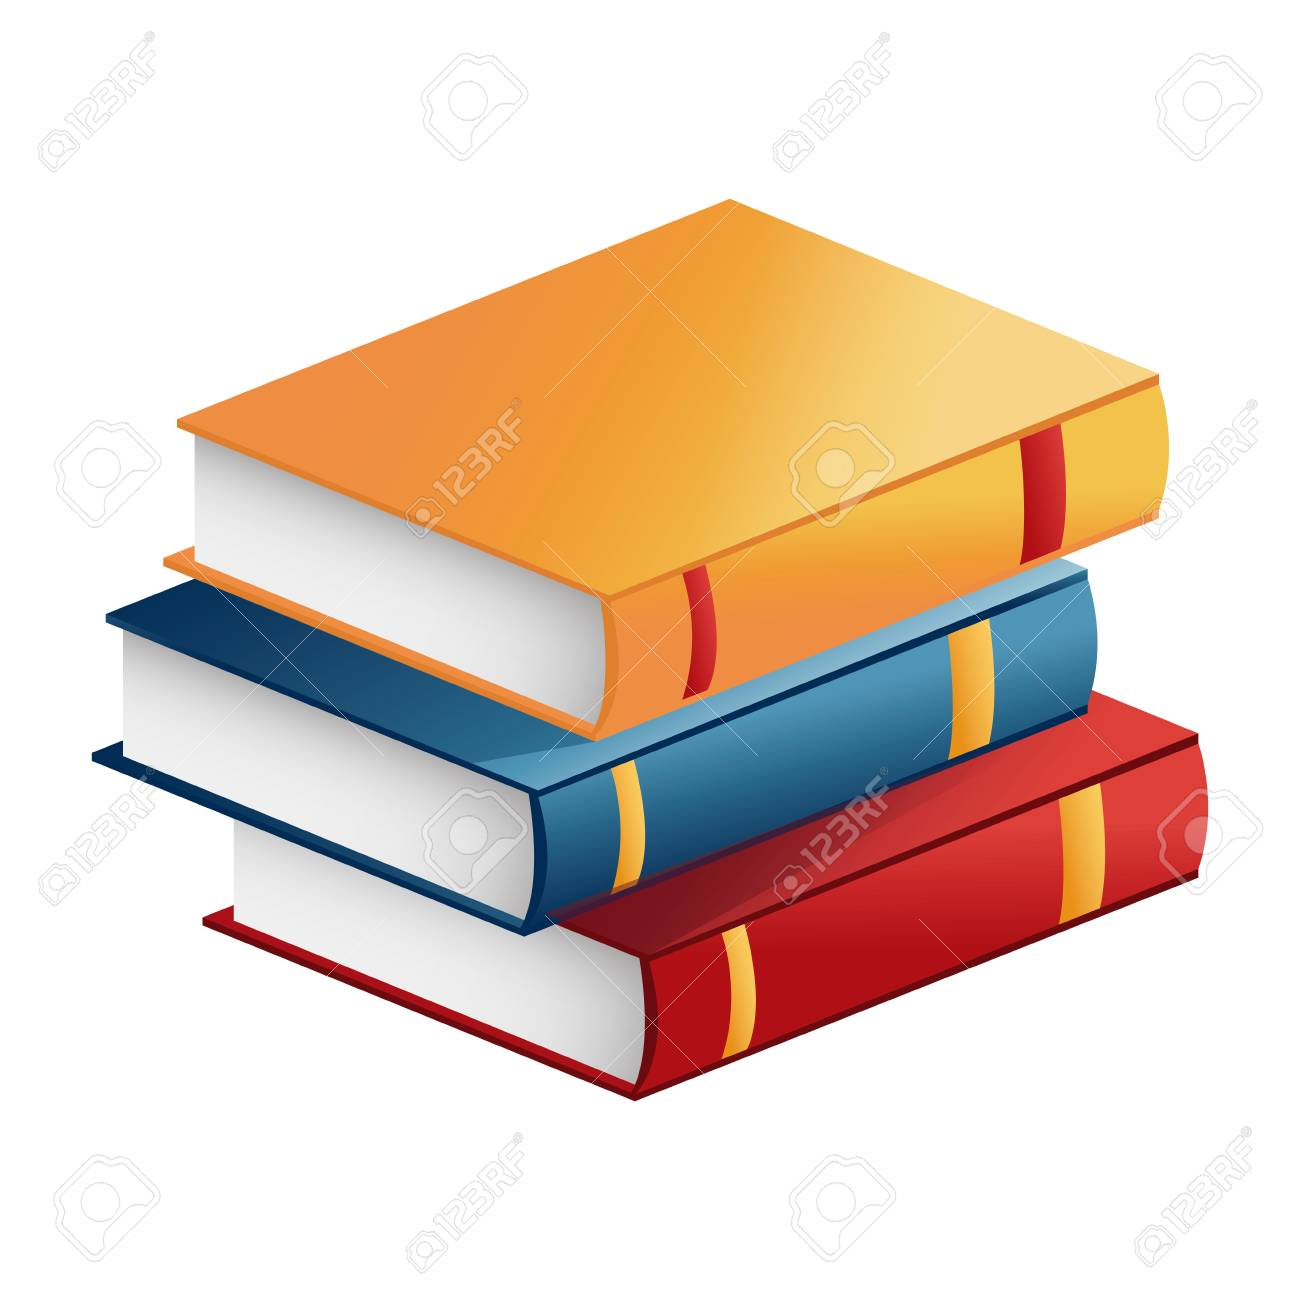 Stack Book Literature Learning Study Vector Illustration